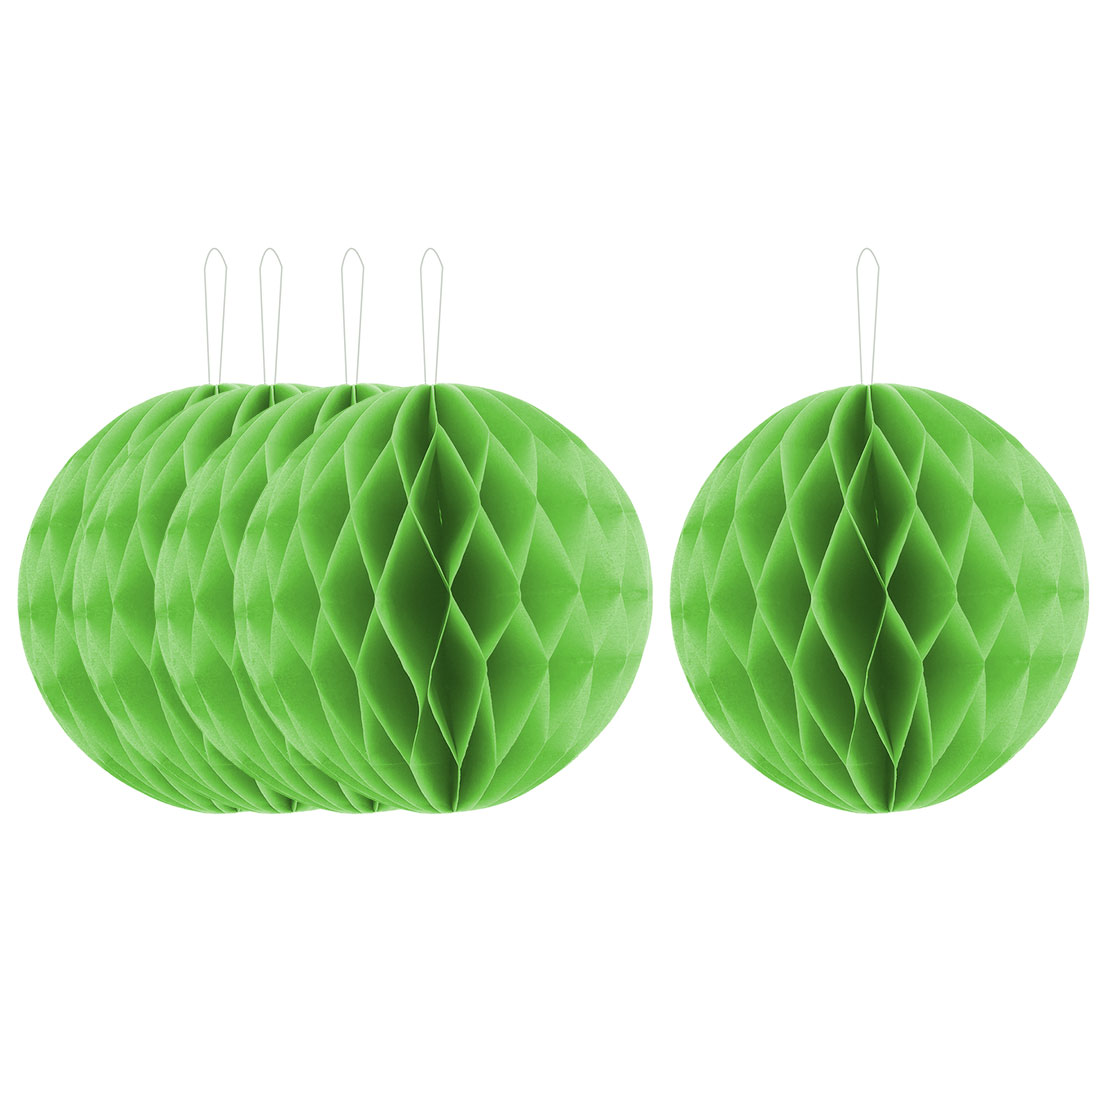 Party Paper DIY Craft Hanging Decor Honeycomb Ball Lantern Light Green 8 Inches 5pcs